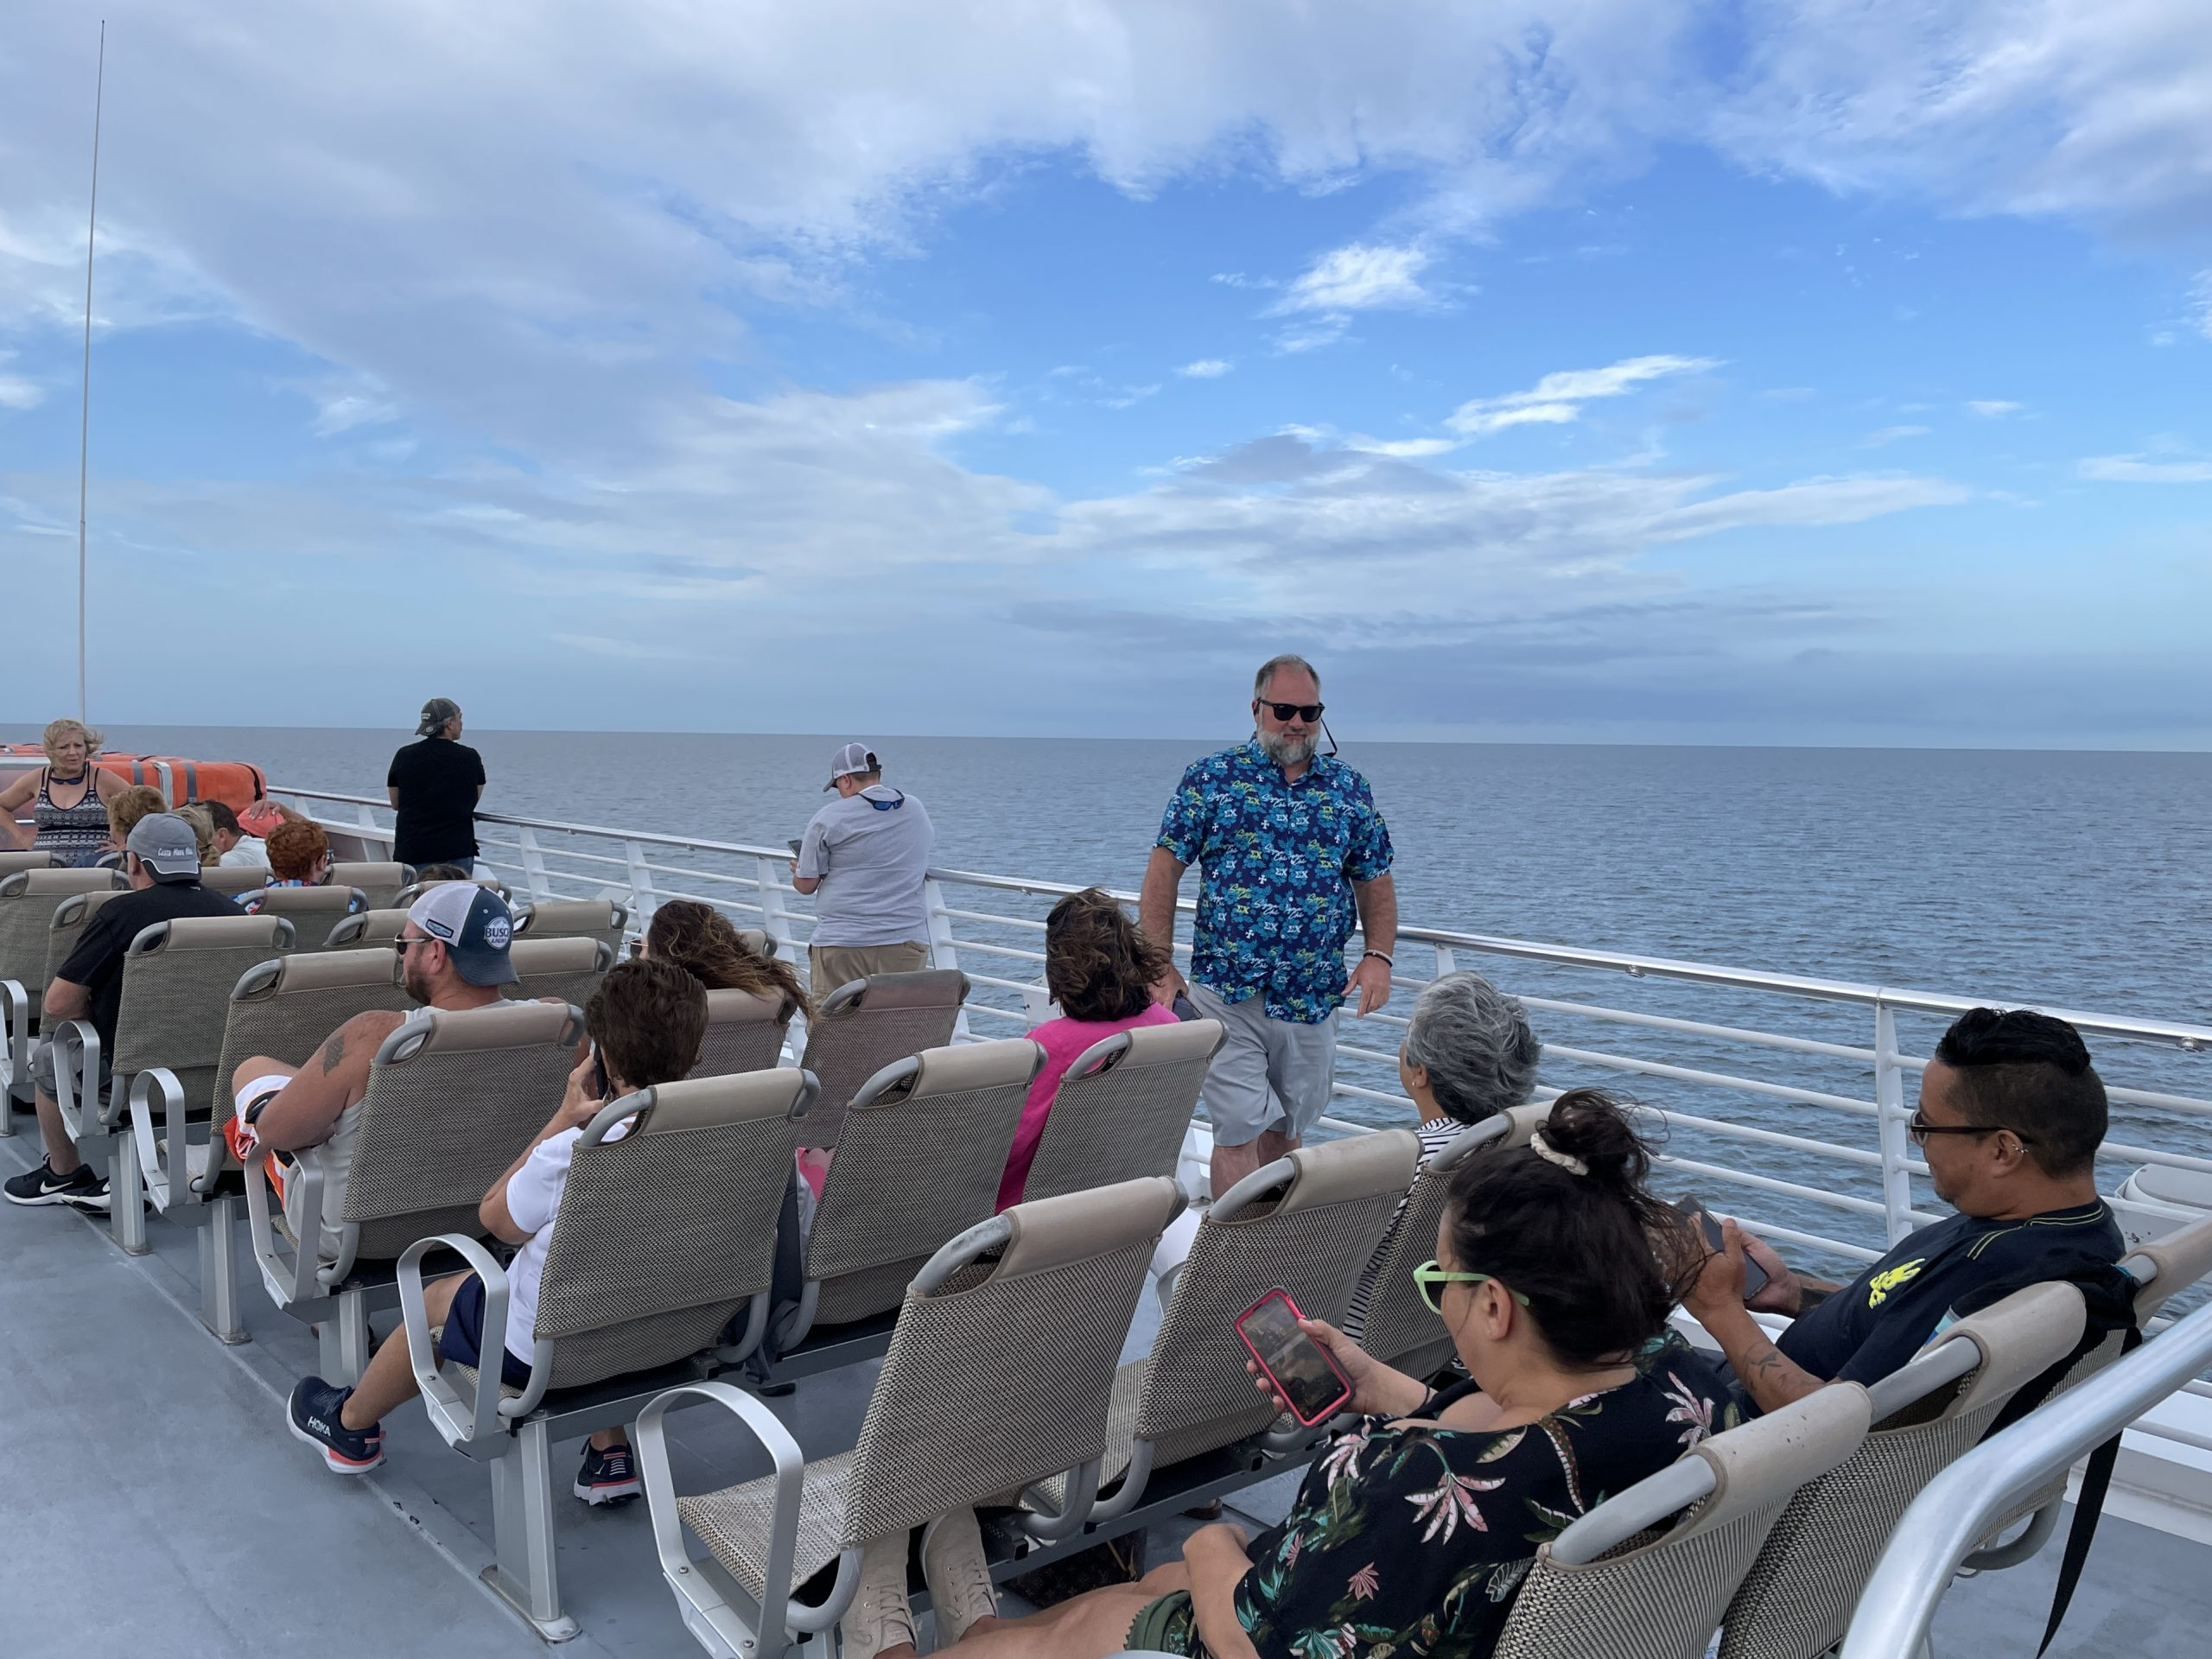 riding on top of the key west express from fort myers to key west